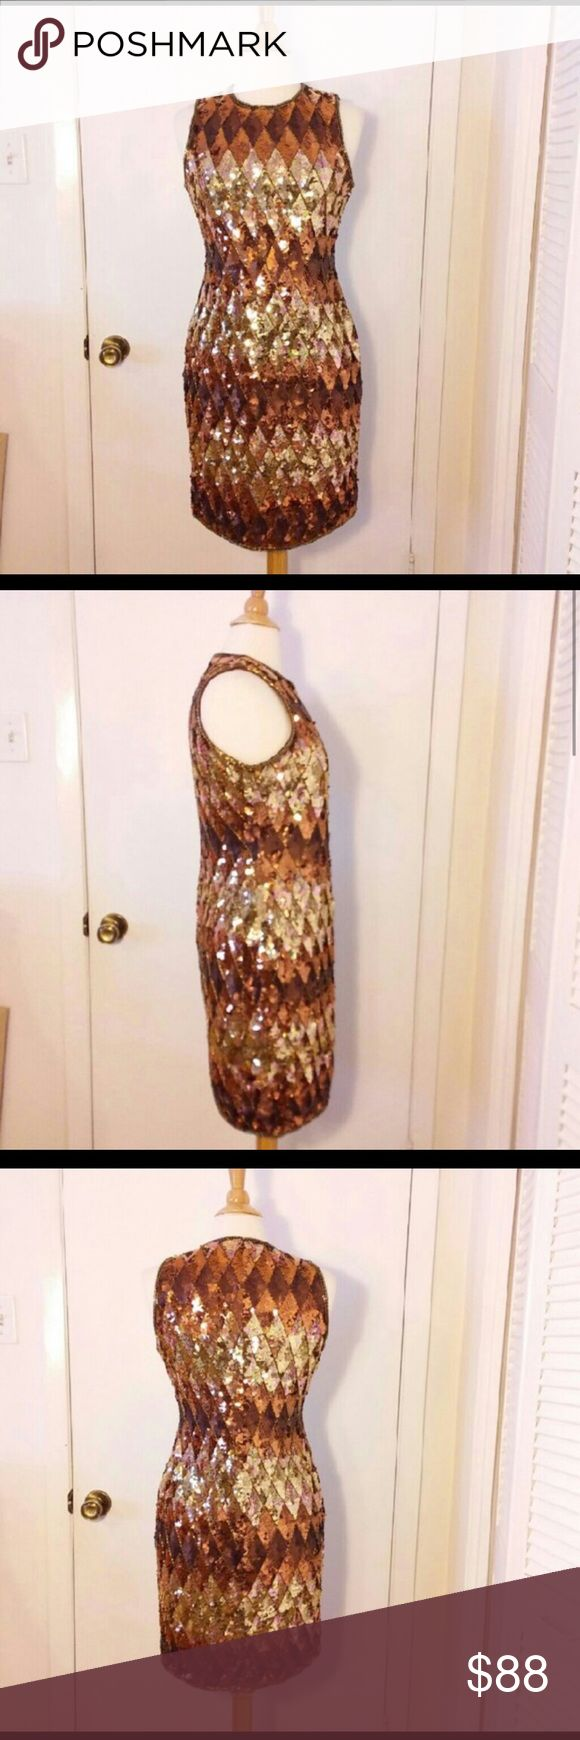 A.J Bari Bronze & Gold Sequin Dress Size 12 Fabulous evening shift dress with diamond patterned sequins in shades of bronze and gold. Honestly my favorite of all times. I've gotten so many compliments in this dress. Everyone noticed me in the room when I walked in and everyone will notice you as well! Such a glam dress! Measurements: 37' long, 13' across shoulders, 19' across bust, 16' across waist, 20' across hips and 18' across hem. Great condition and amazing quality. A.J. Bari Dresses…